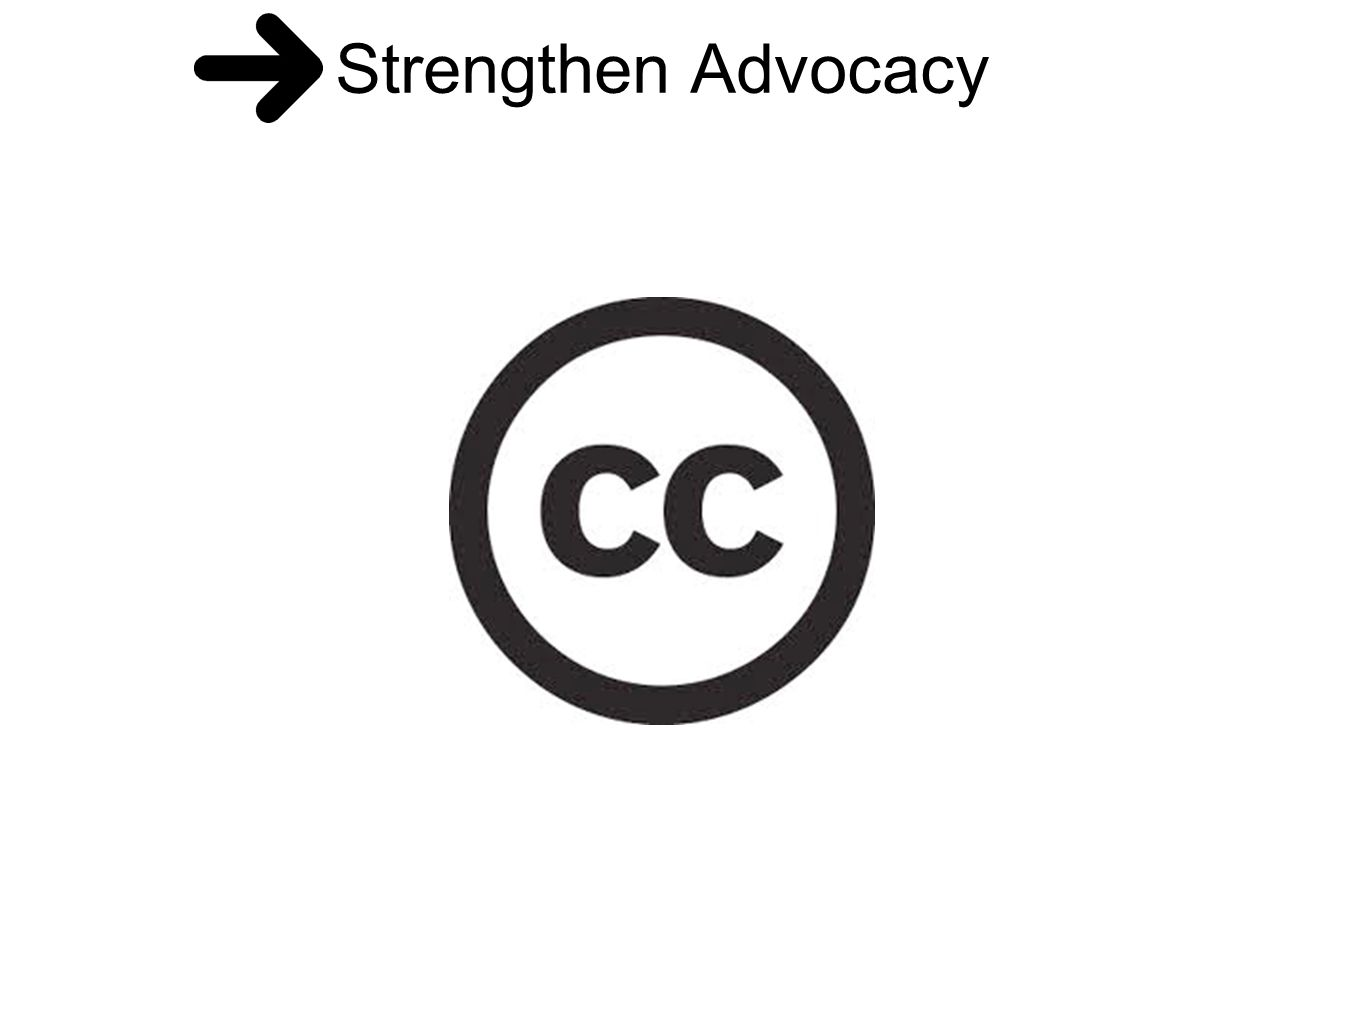 Strengthen Advocacy